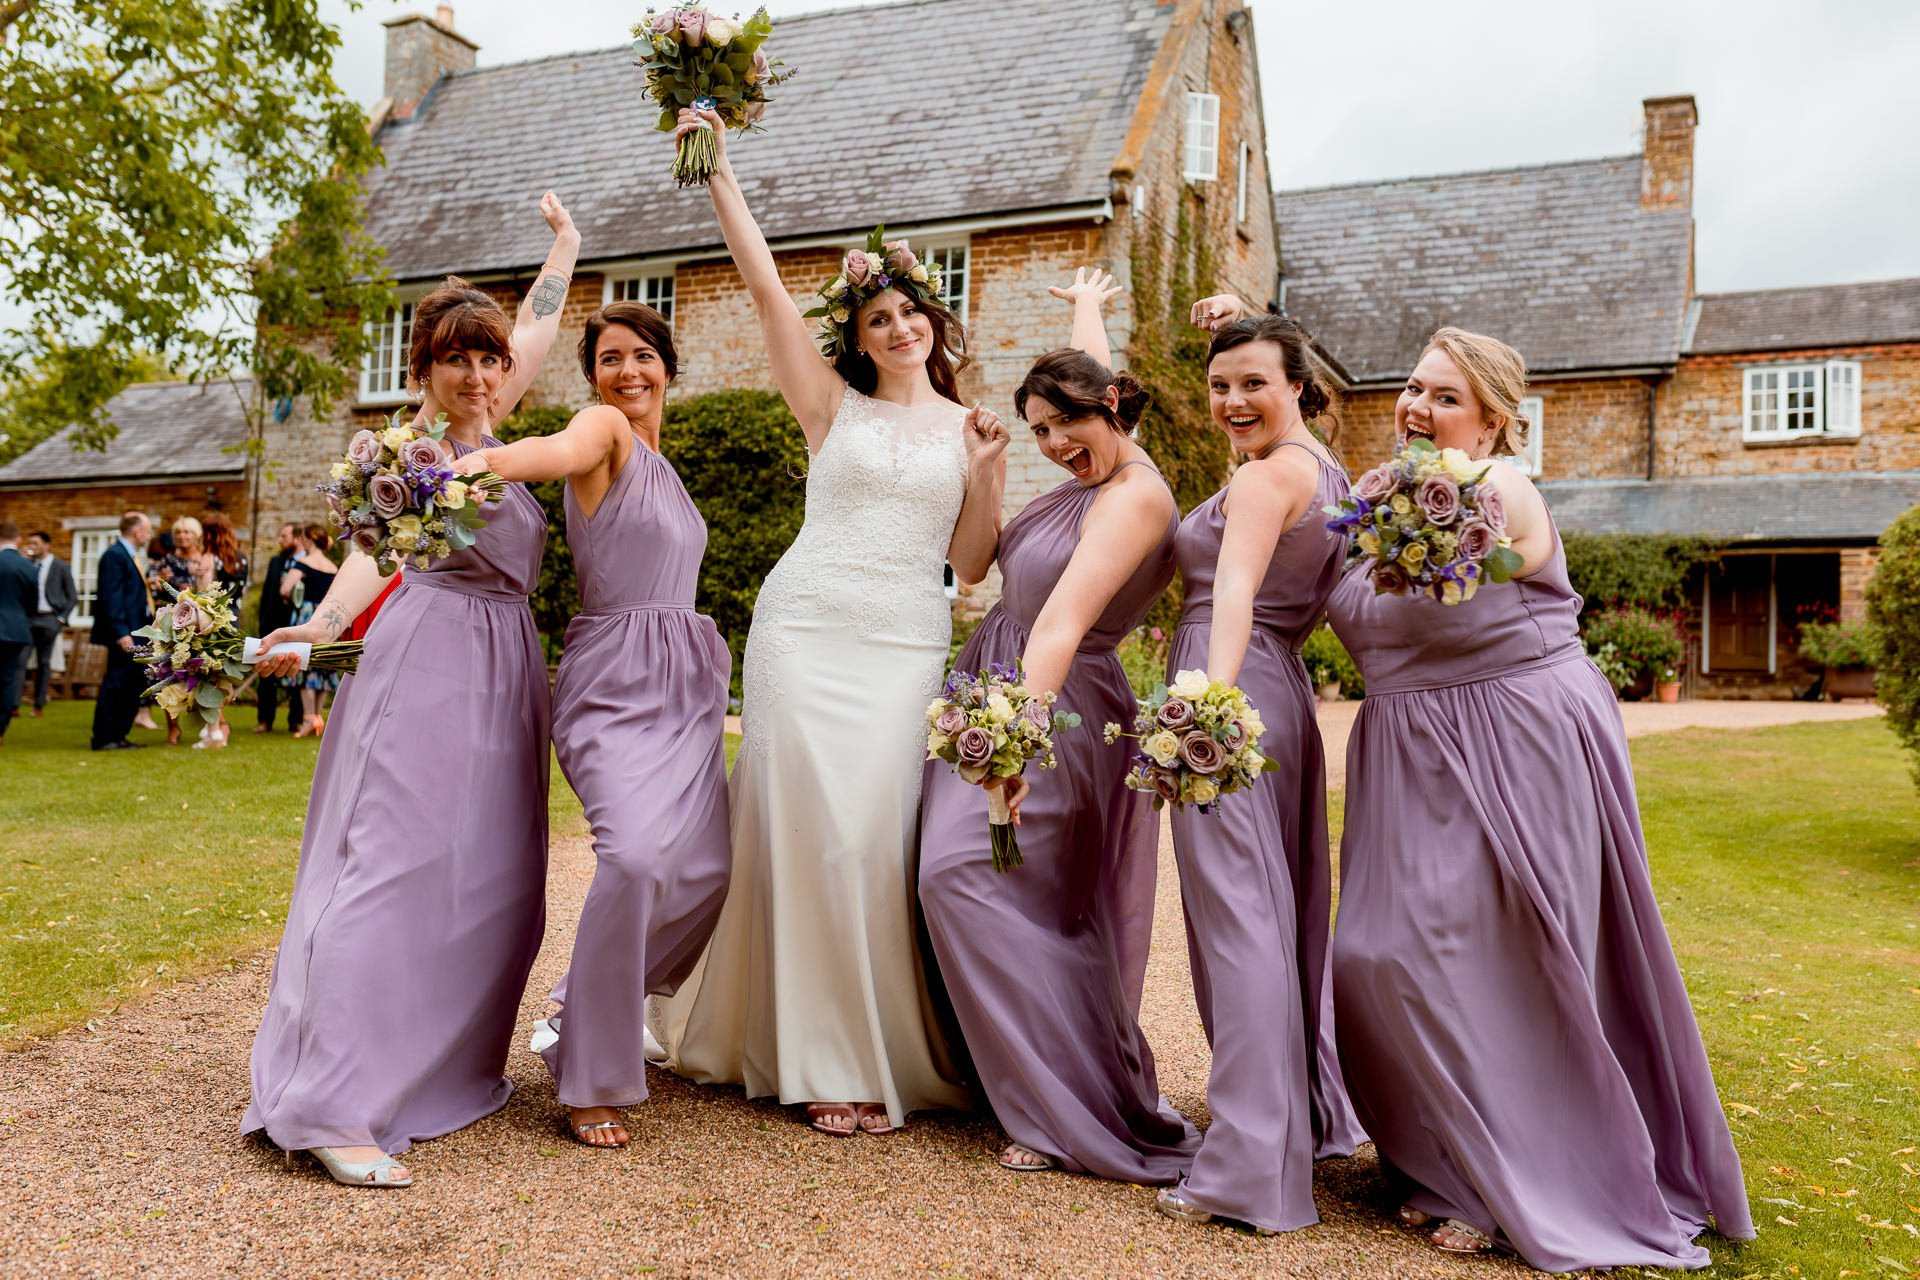 Oxford Wedding Event Photographer Crockwell Farm